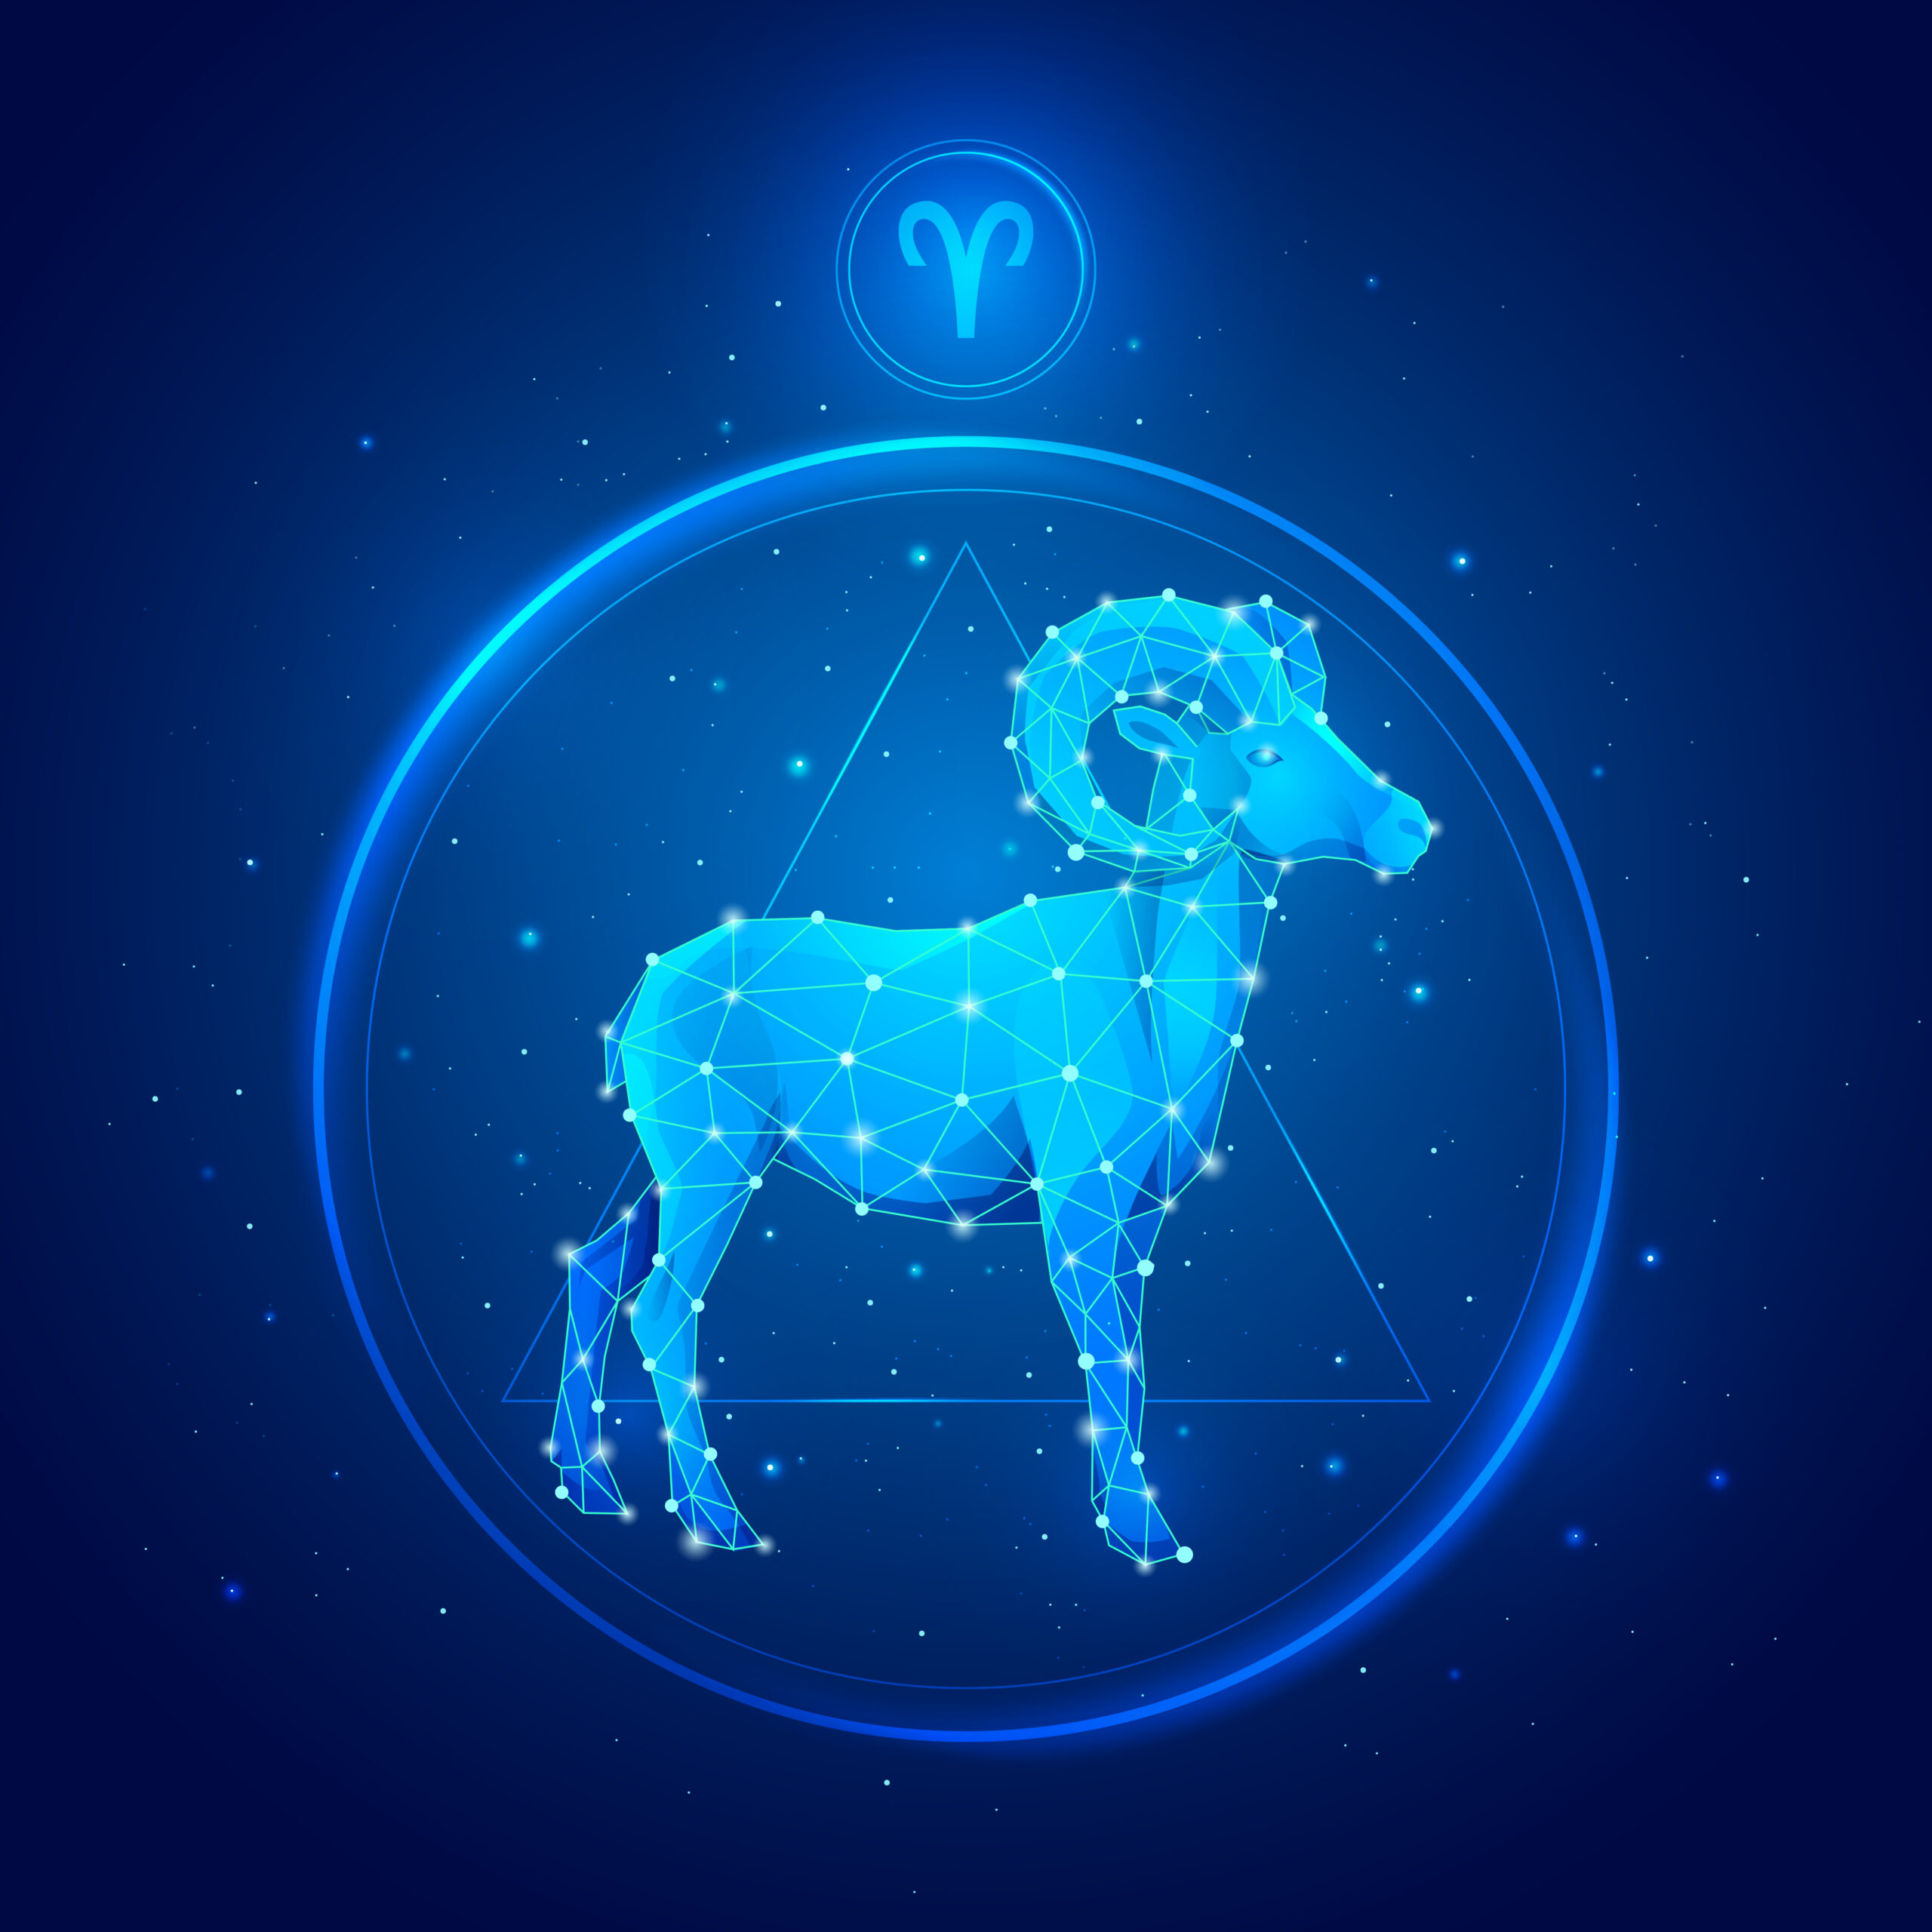 The Complete Details of Aries Sign/Rashi